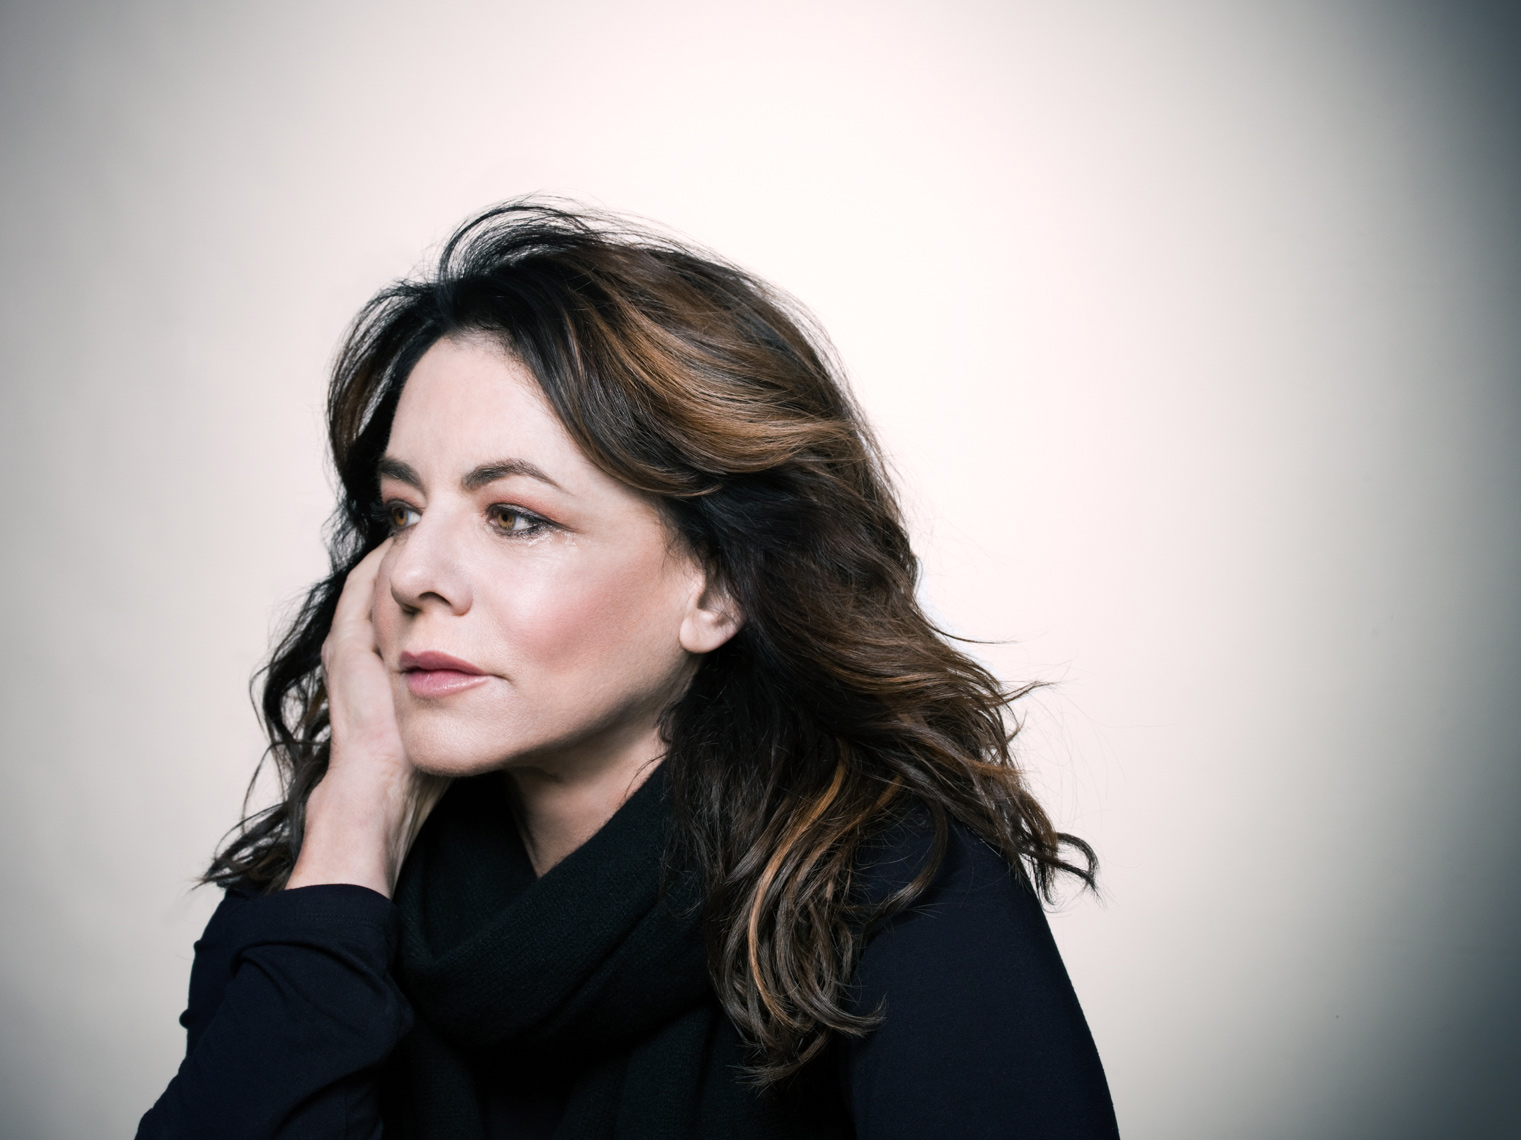 Stockard Channing Portrait by commercial celebrity advertising photographer Michael Grecco